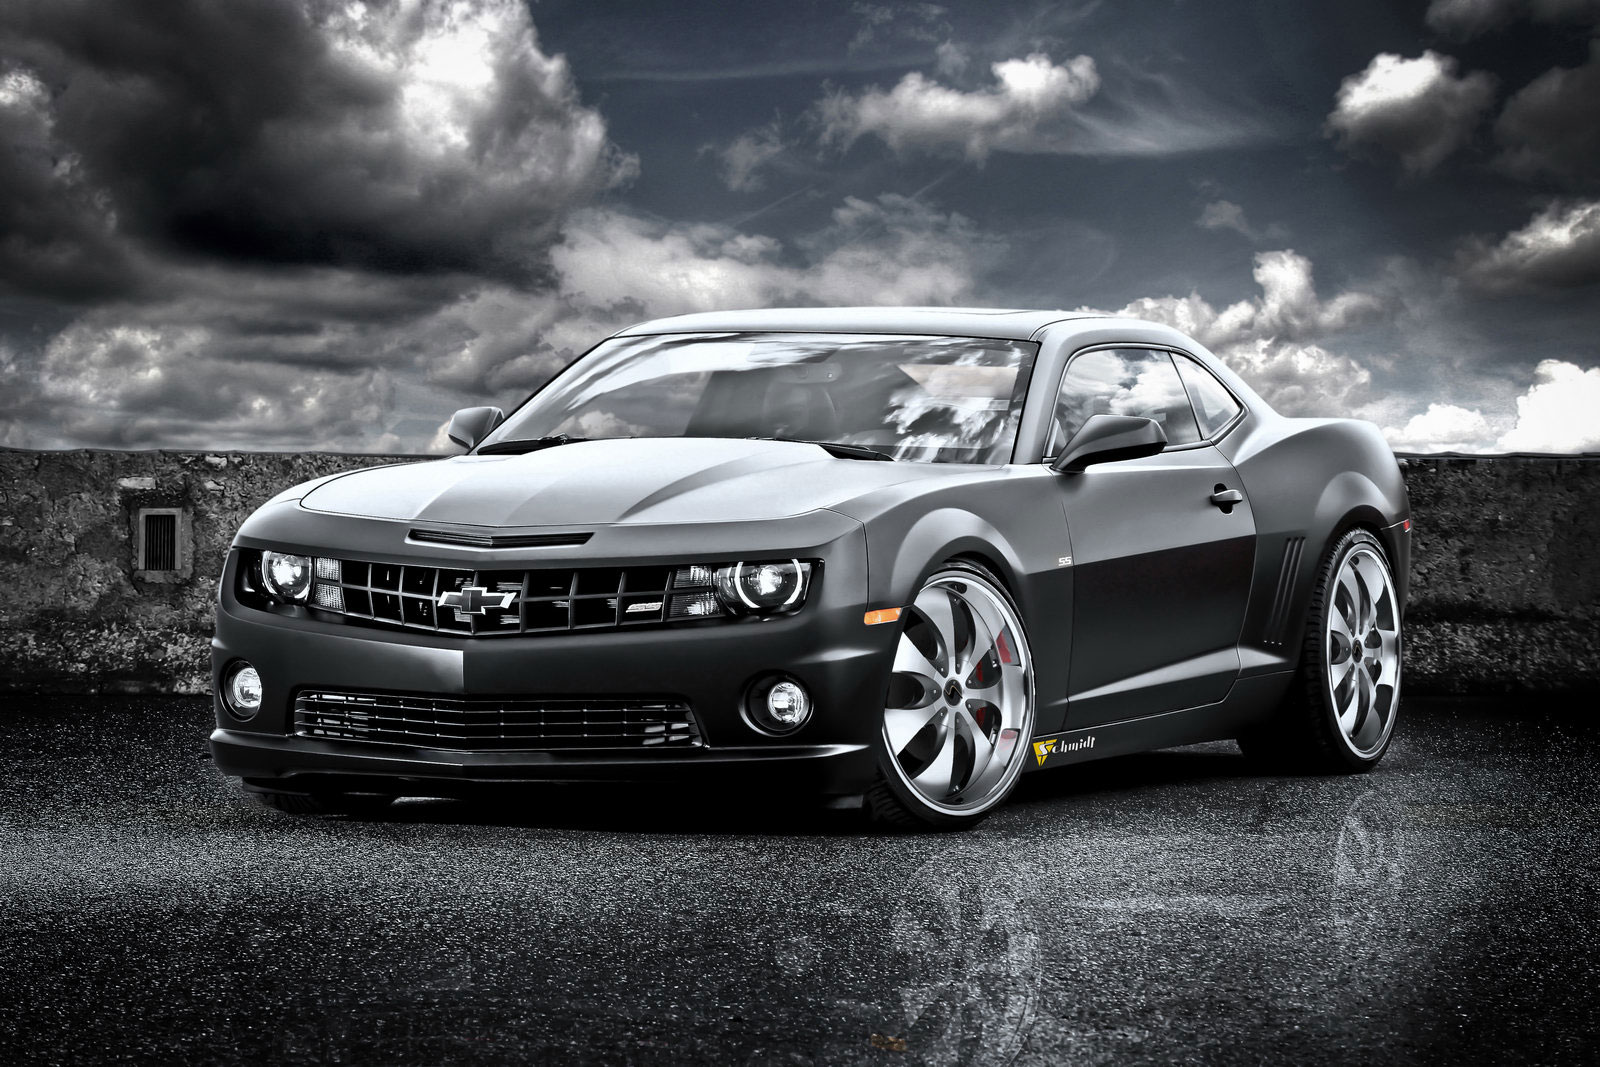 schmidt revolution 39 s 625hp supercharged chevrolet camaro ss extravaganzi. Black Bedroom Furniture Sets. Home Design Ideas